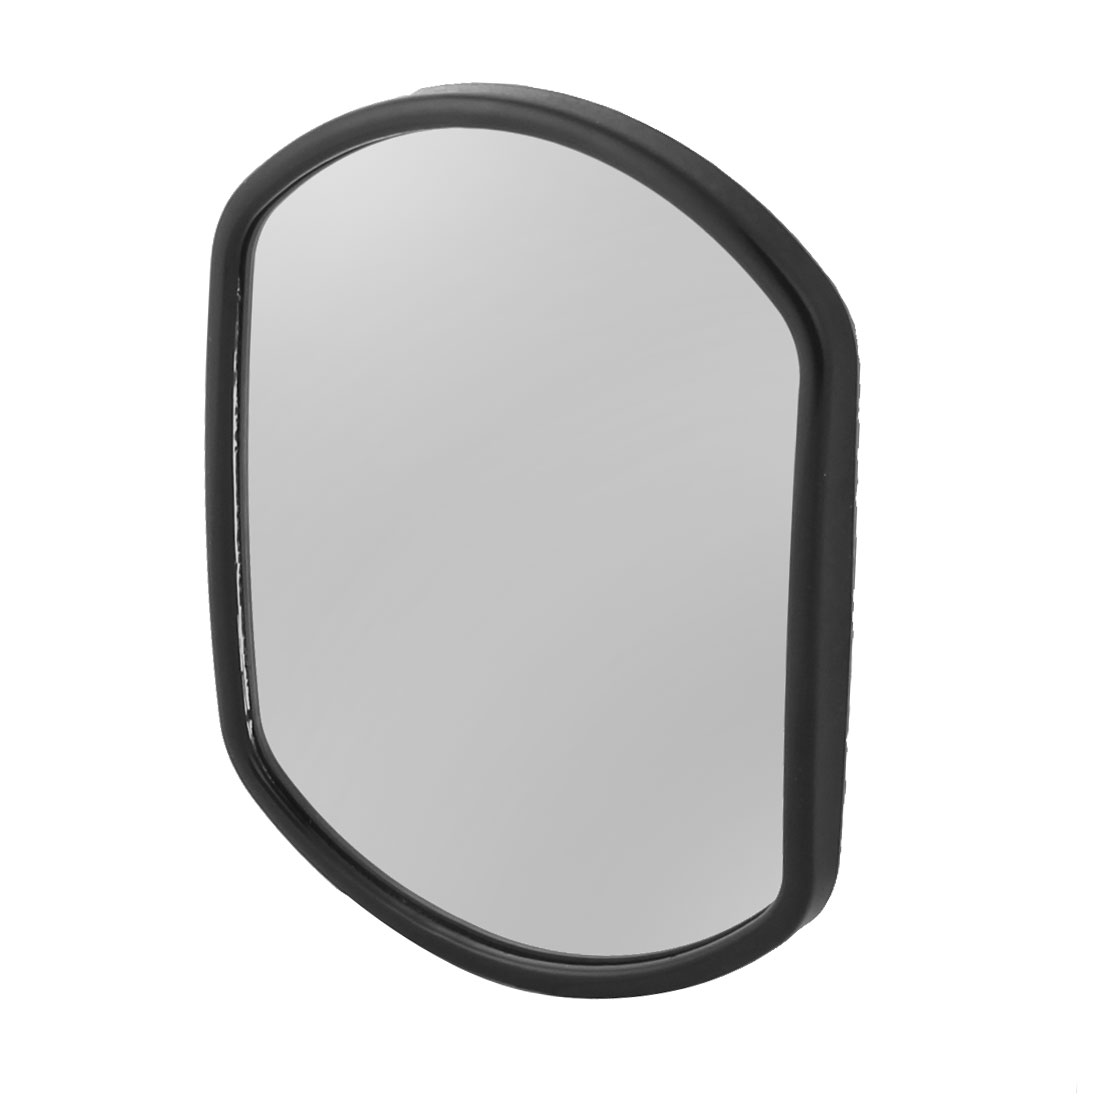 Bus Truck Auto Convex Rear View Blind Spot Mirror Black 13.7 x 10.5 x 1.2cm